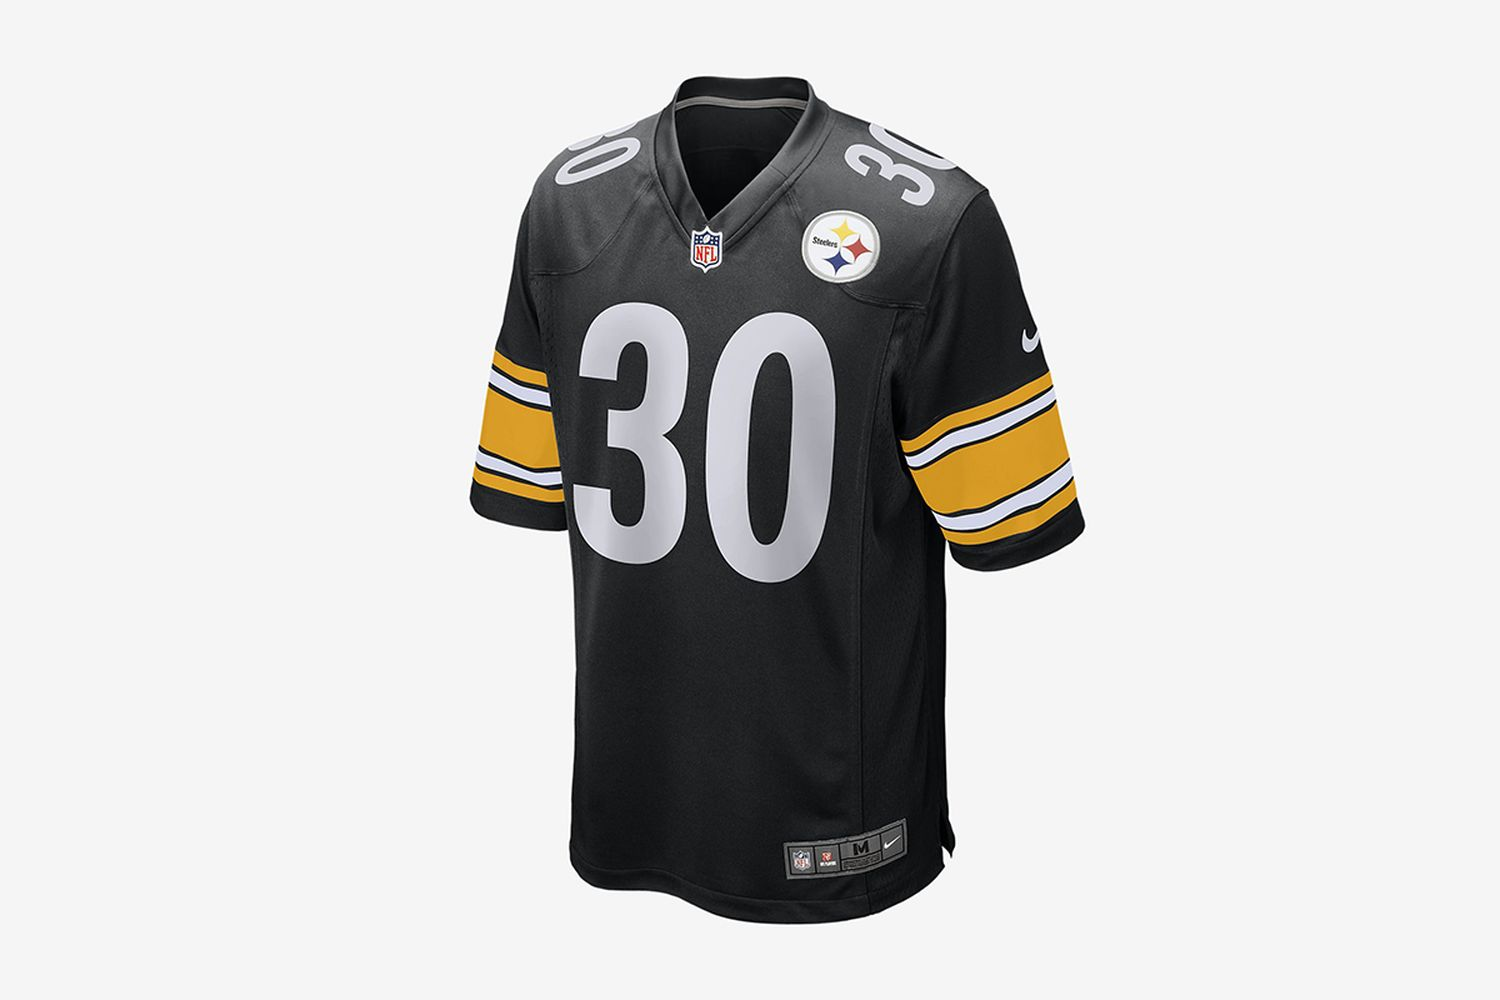 NFL Pittsburgh Steelers Game (James Conner) Men's Football Jersey